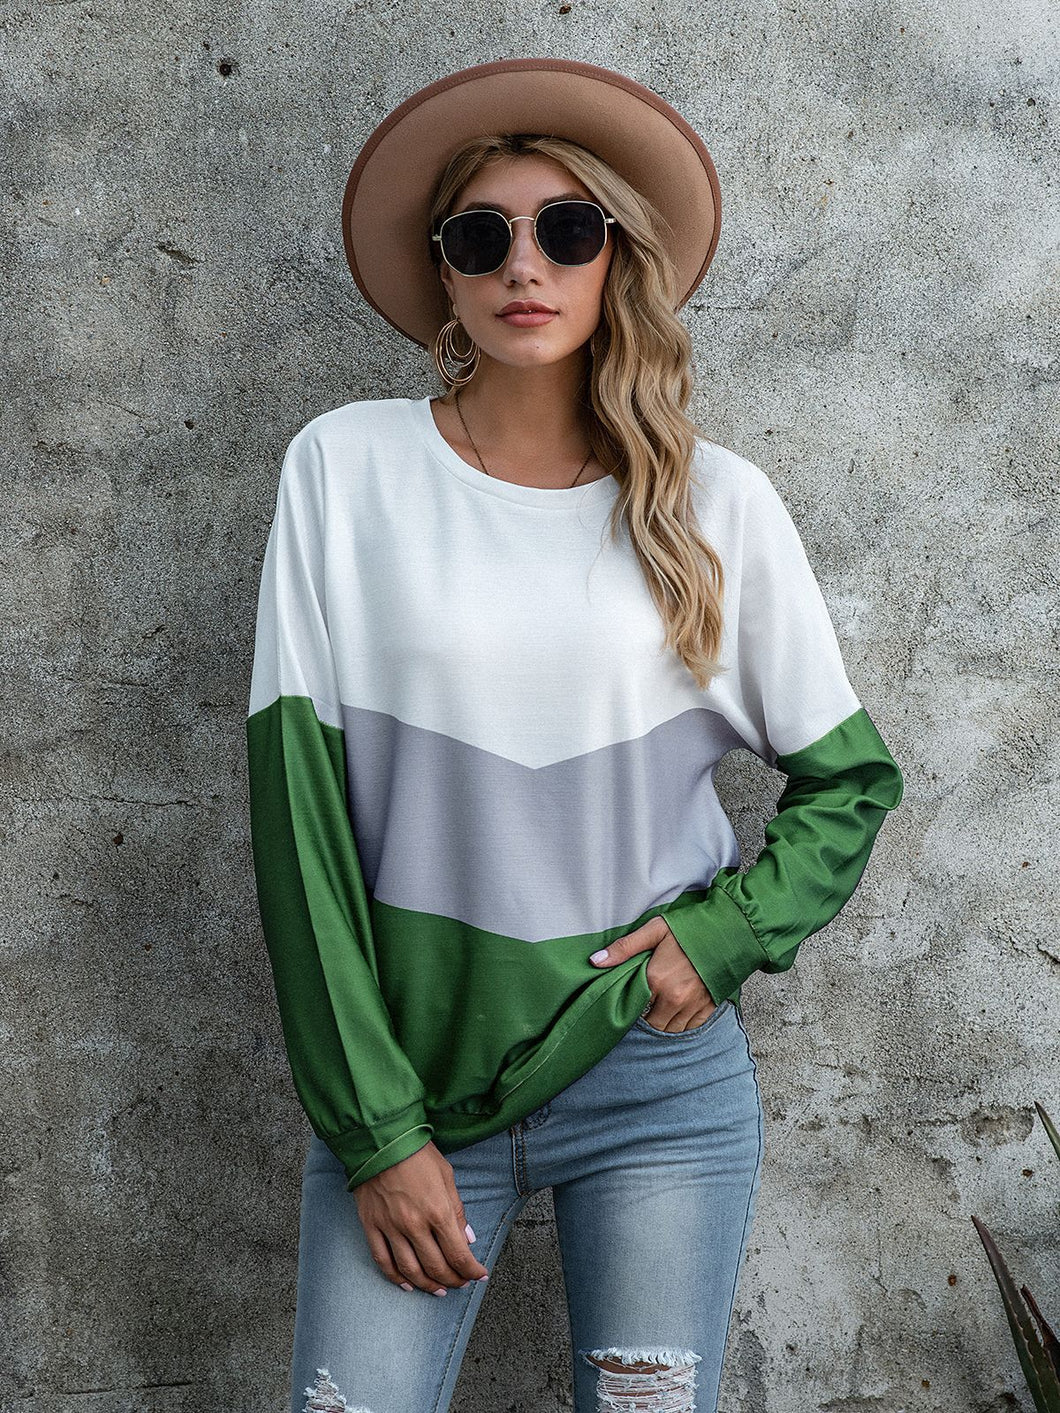 2020 new European and American cross border T-shirt eBay women's popular fashion splicing printing three color women's top long sleeve T-shirt